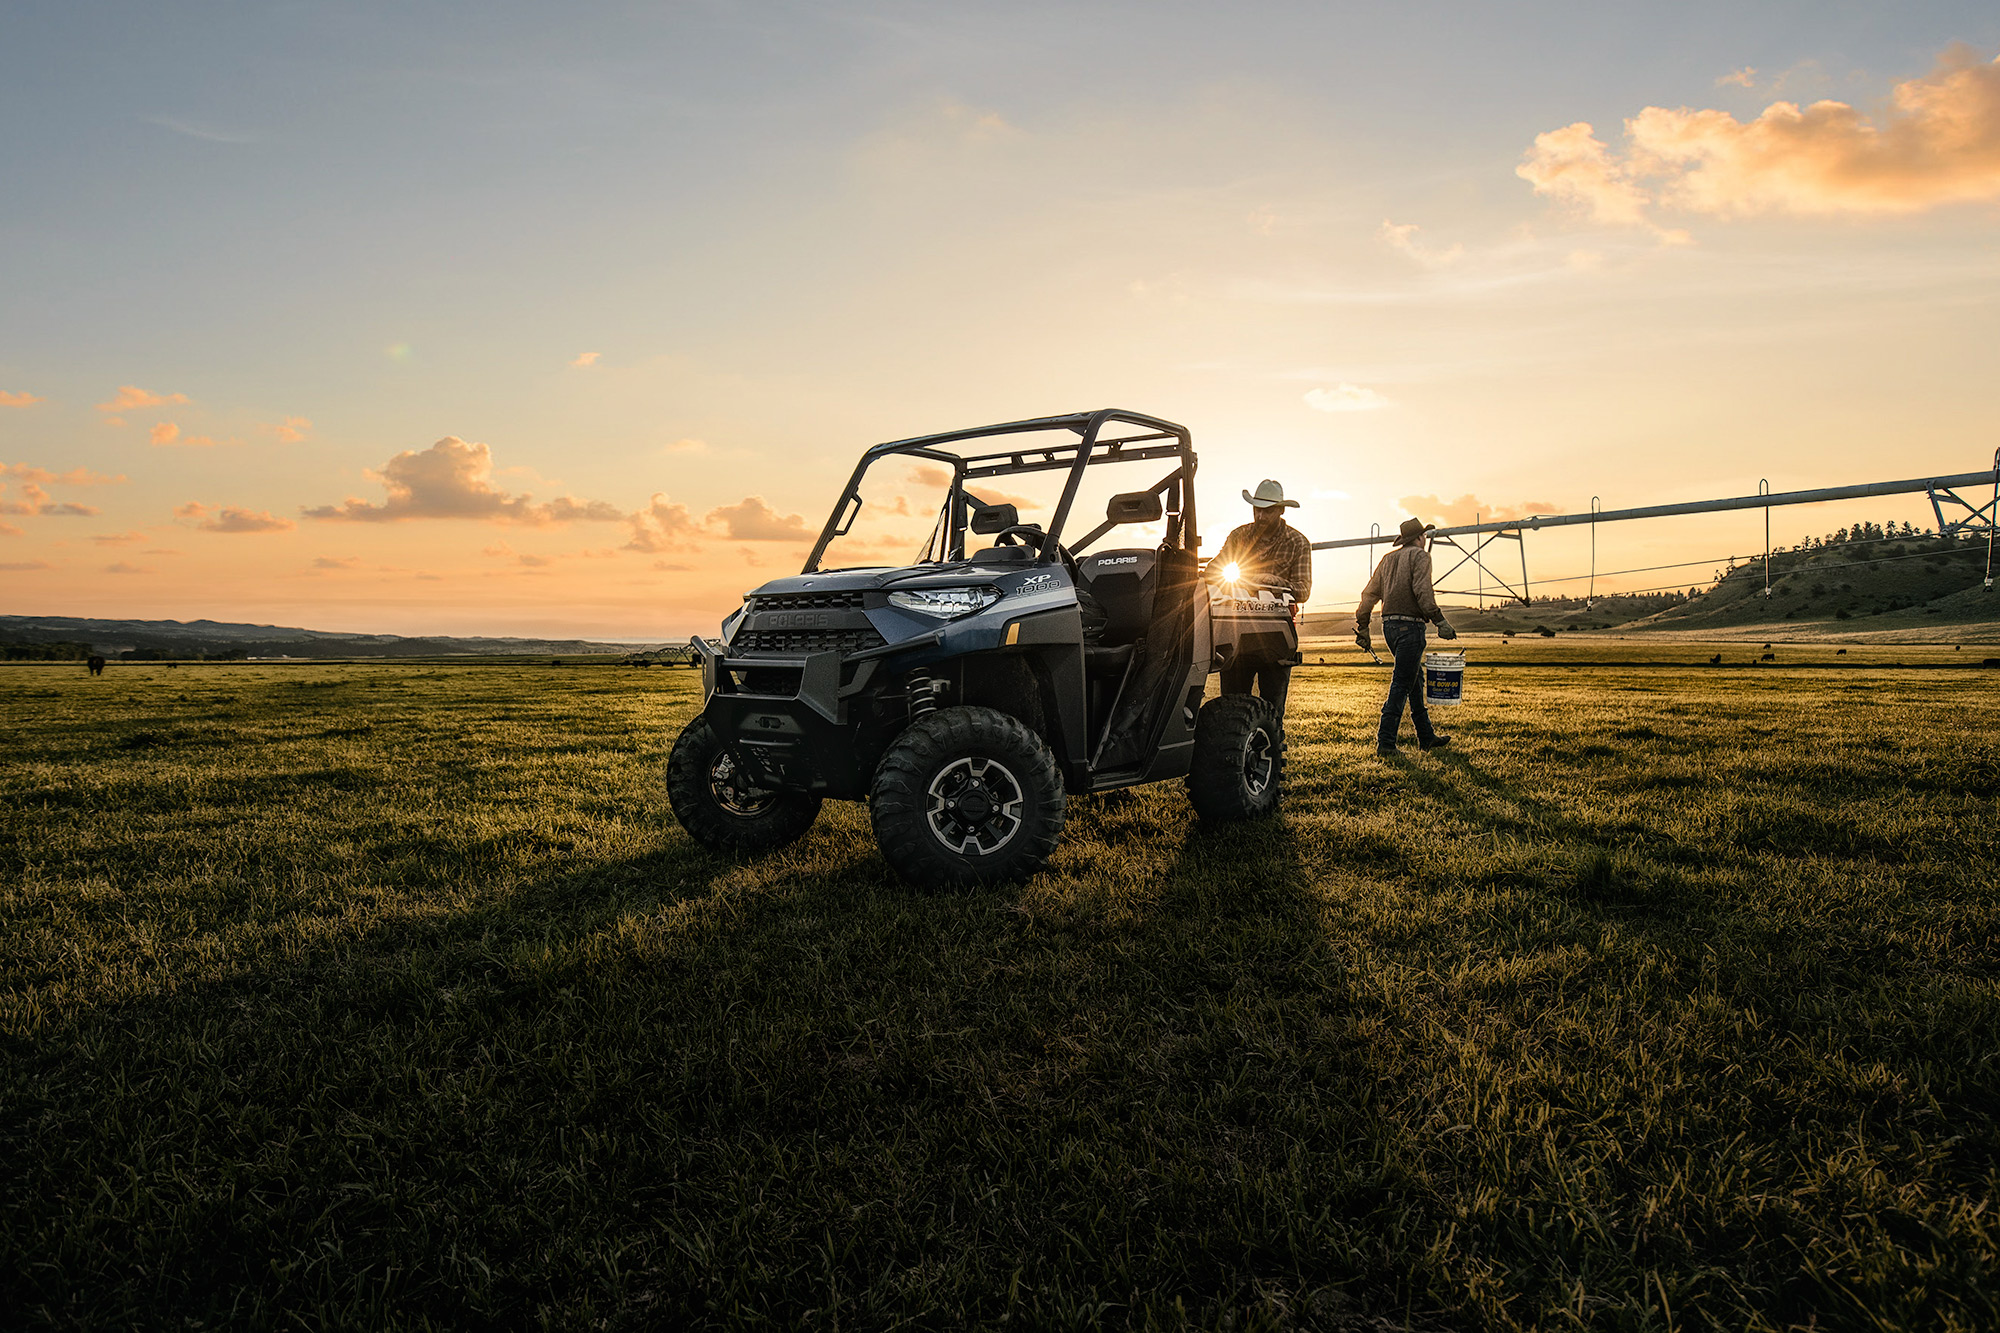 Polaris Ranger Crew >> Polaris rolls out 2019 off-road vehicle line-up | AGDAILY